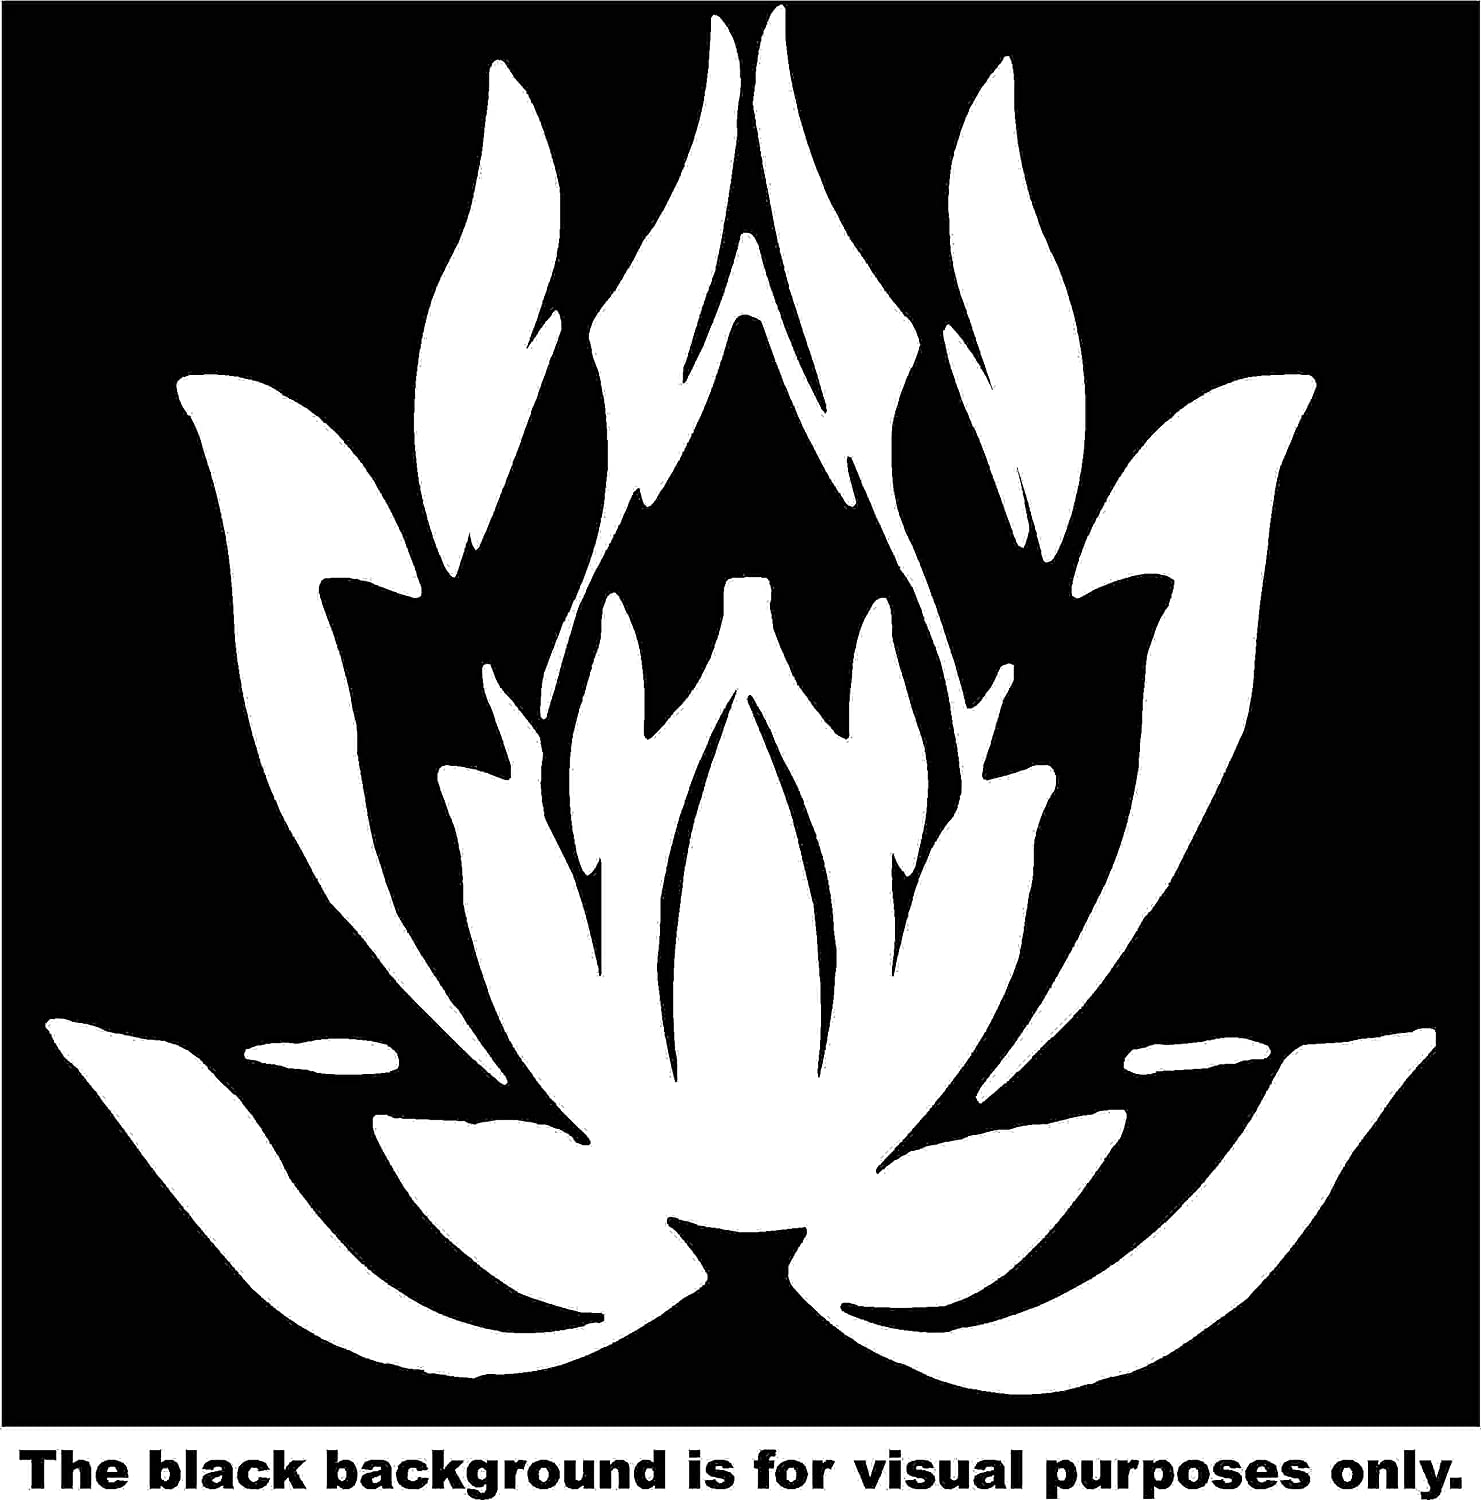 Nature Flower Lotus Car Window Tumblers Wall Decal Sticker Vinyl Laptops Cellphones Phones Tablets Ipads Helmets Motorcycles Computer Towers V and T Gifts